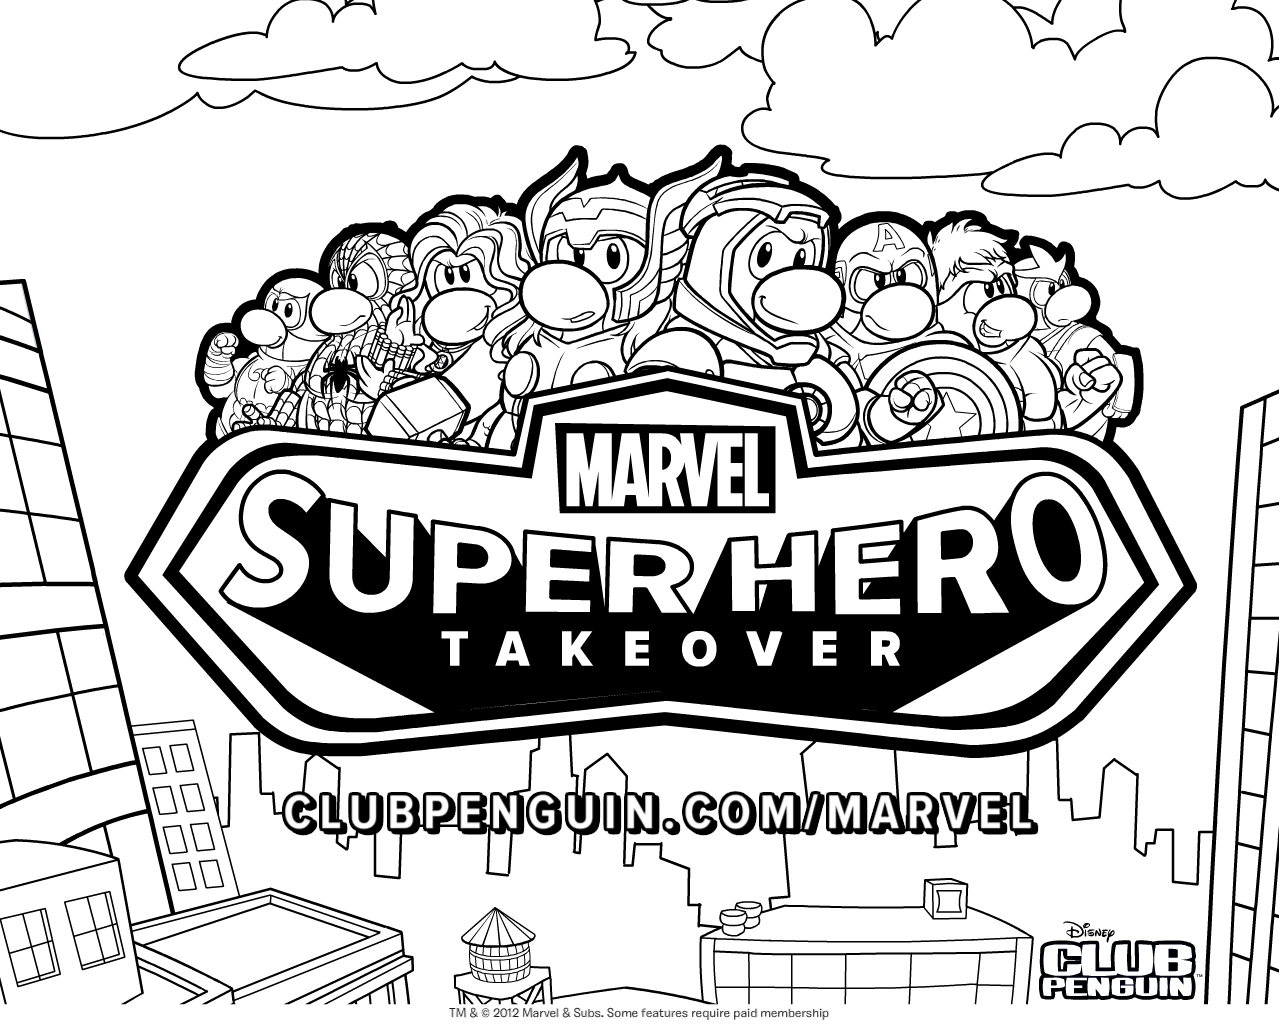 Club Penguin Marvel Super Hero Takeover Coloring Page